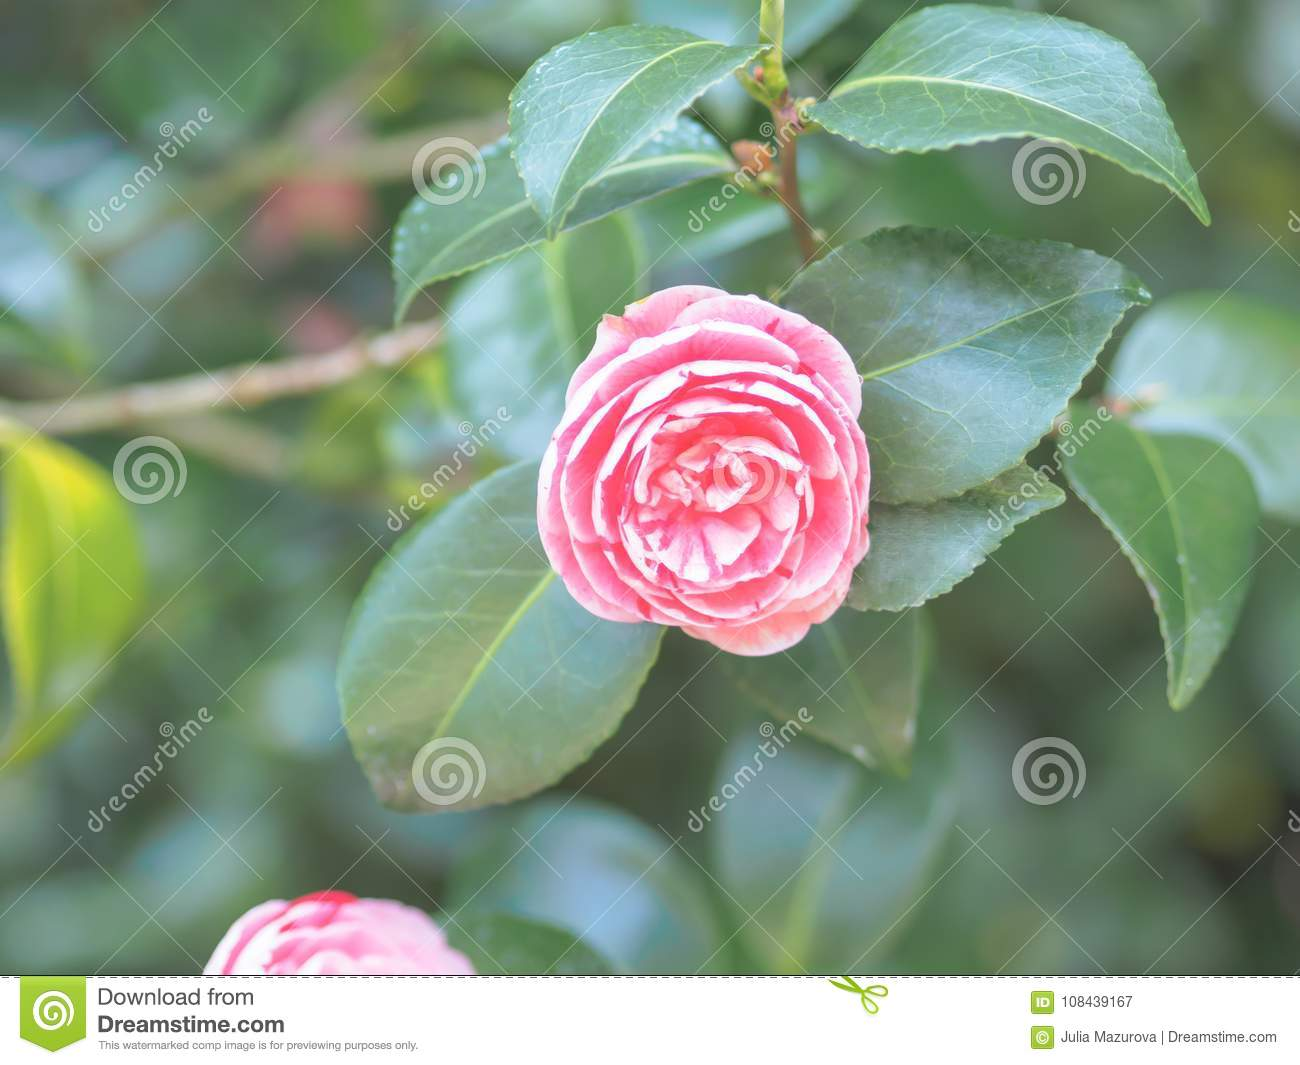 Beautiful Pink Camellia Japonica Japanese Camellia Flower In The